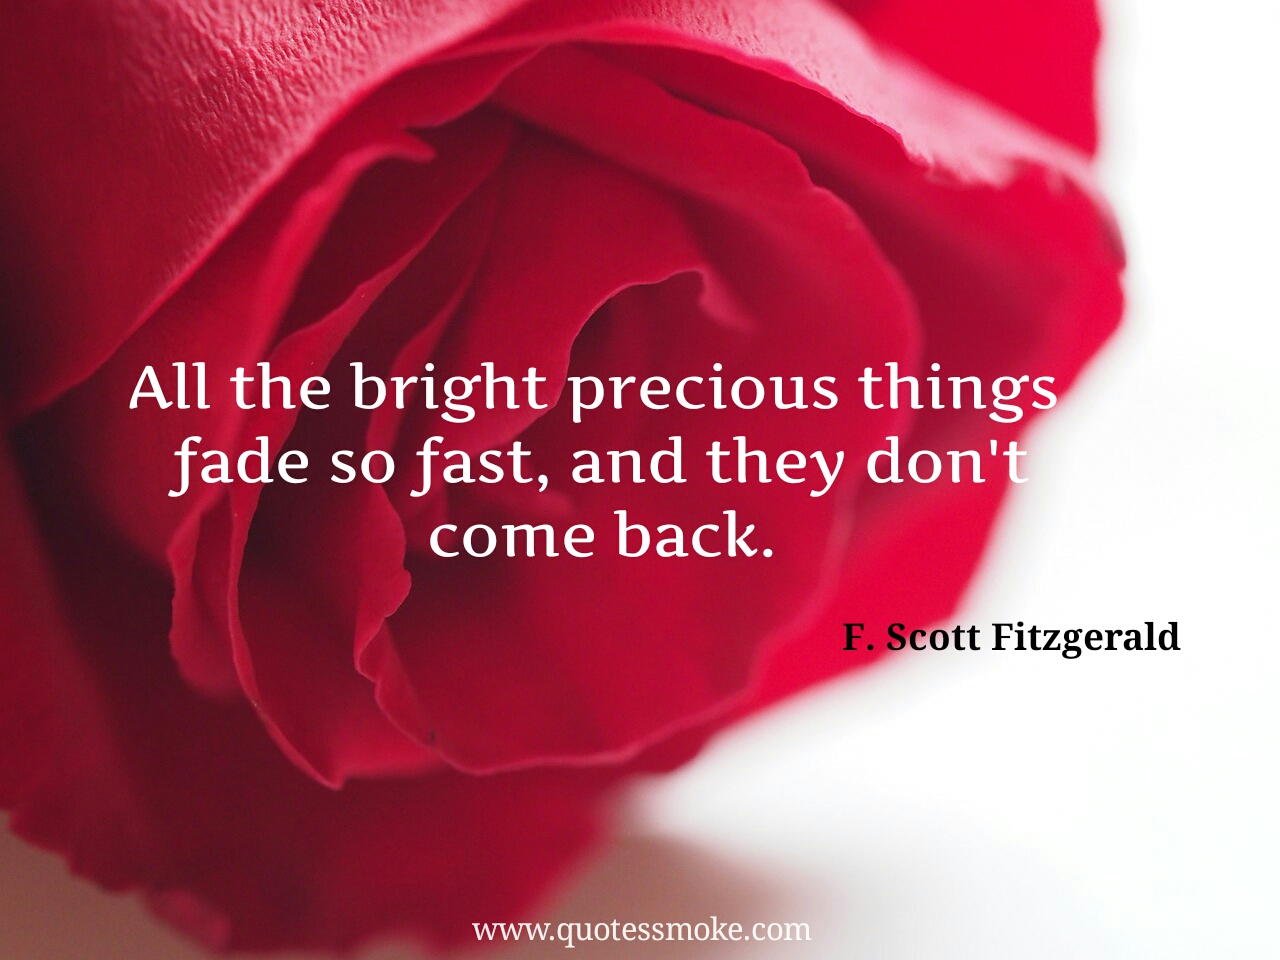 Garden Love Quotes 25 Best F Scott Fitzgerald Love Quotes To Look Into You And Life